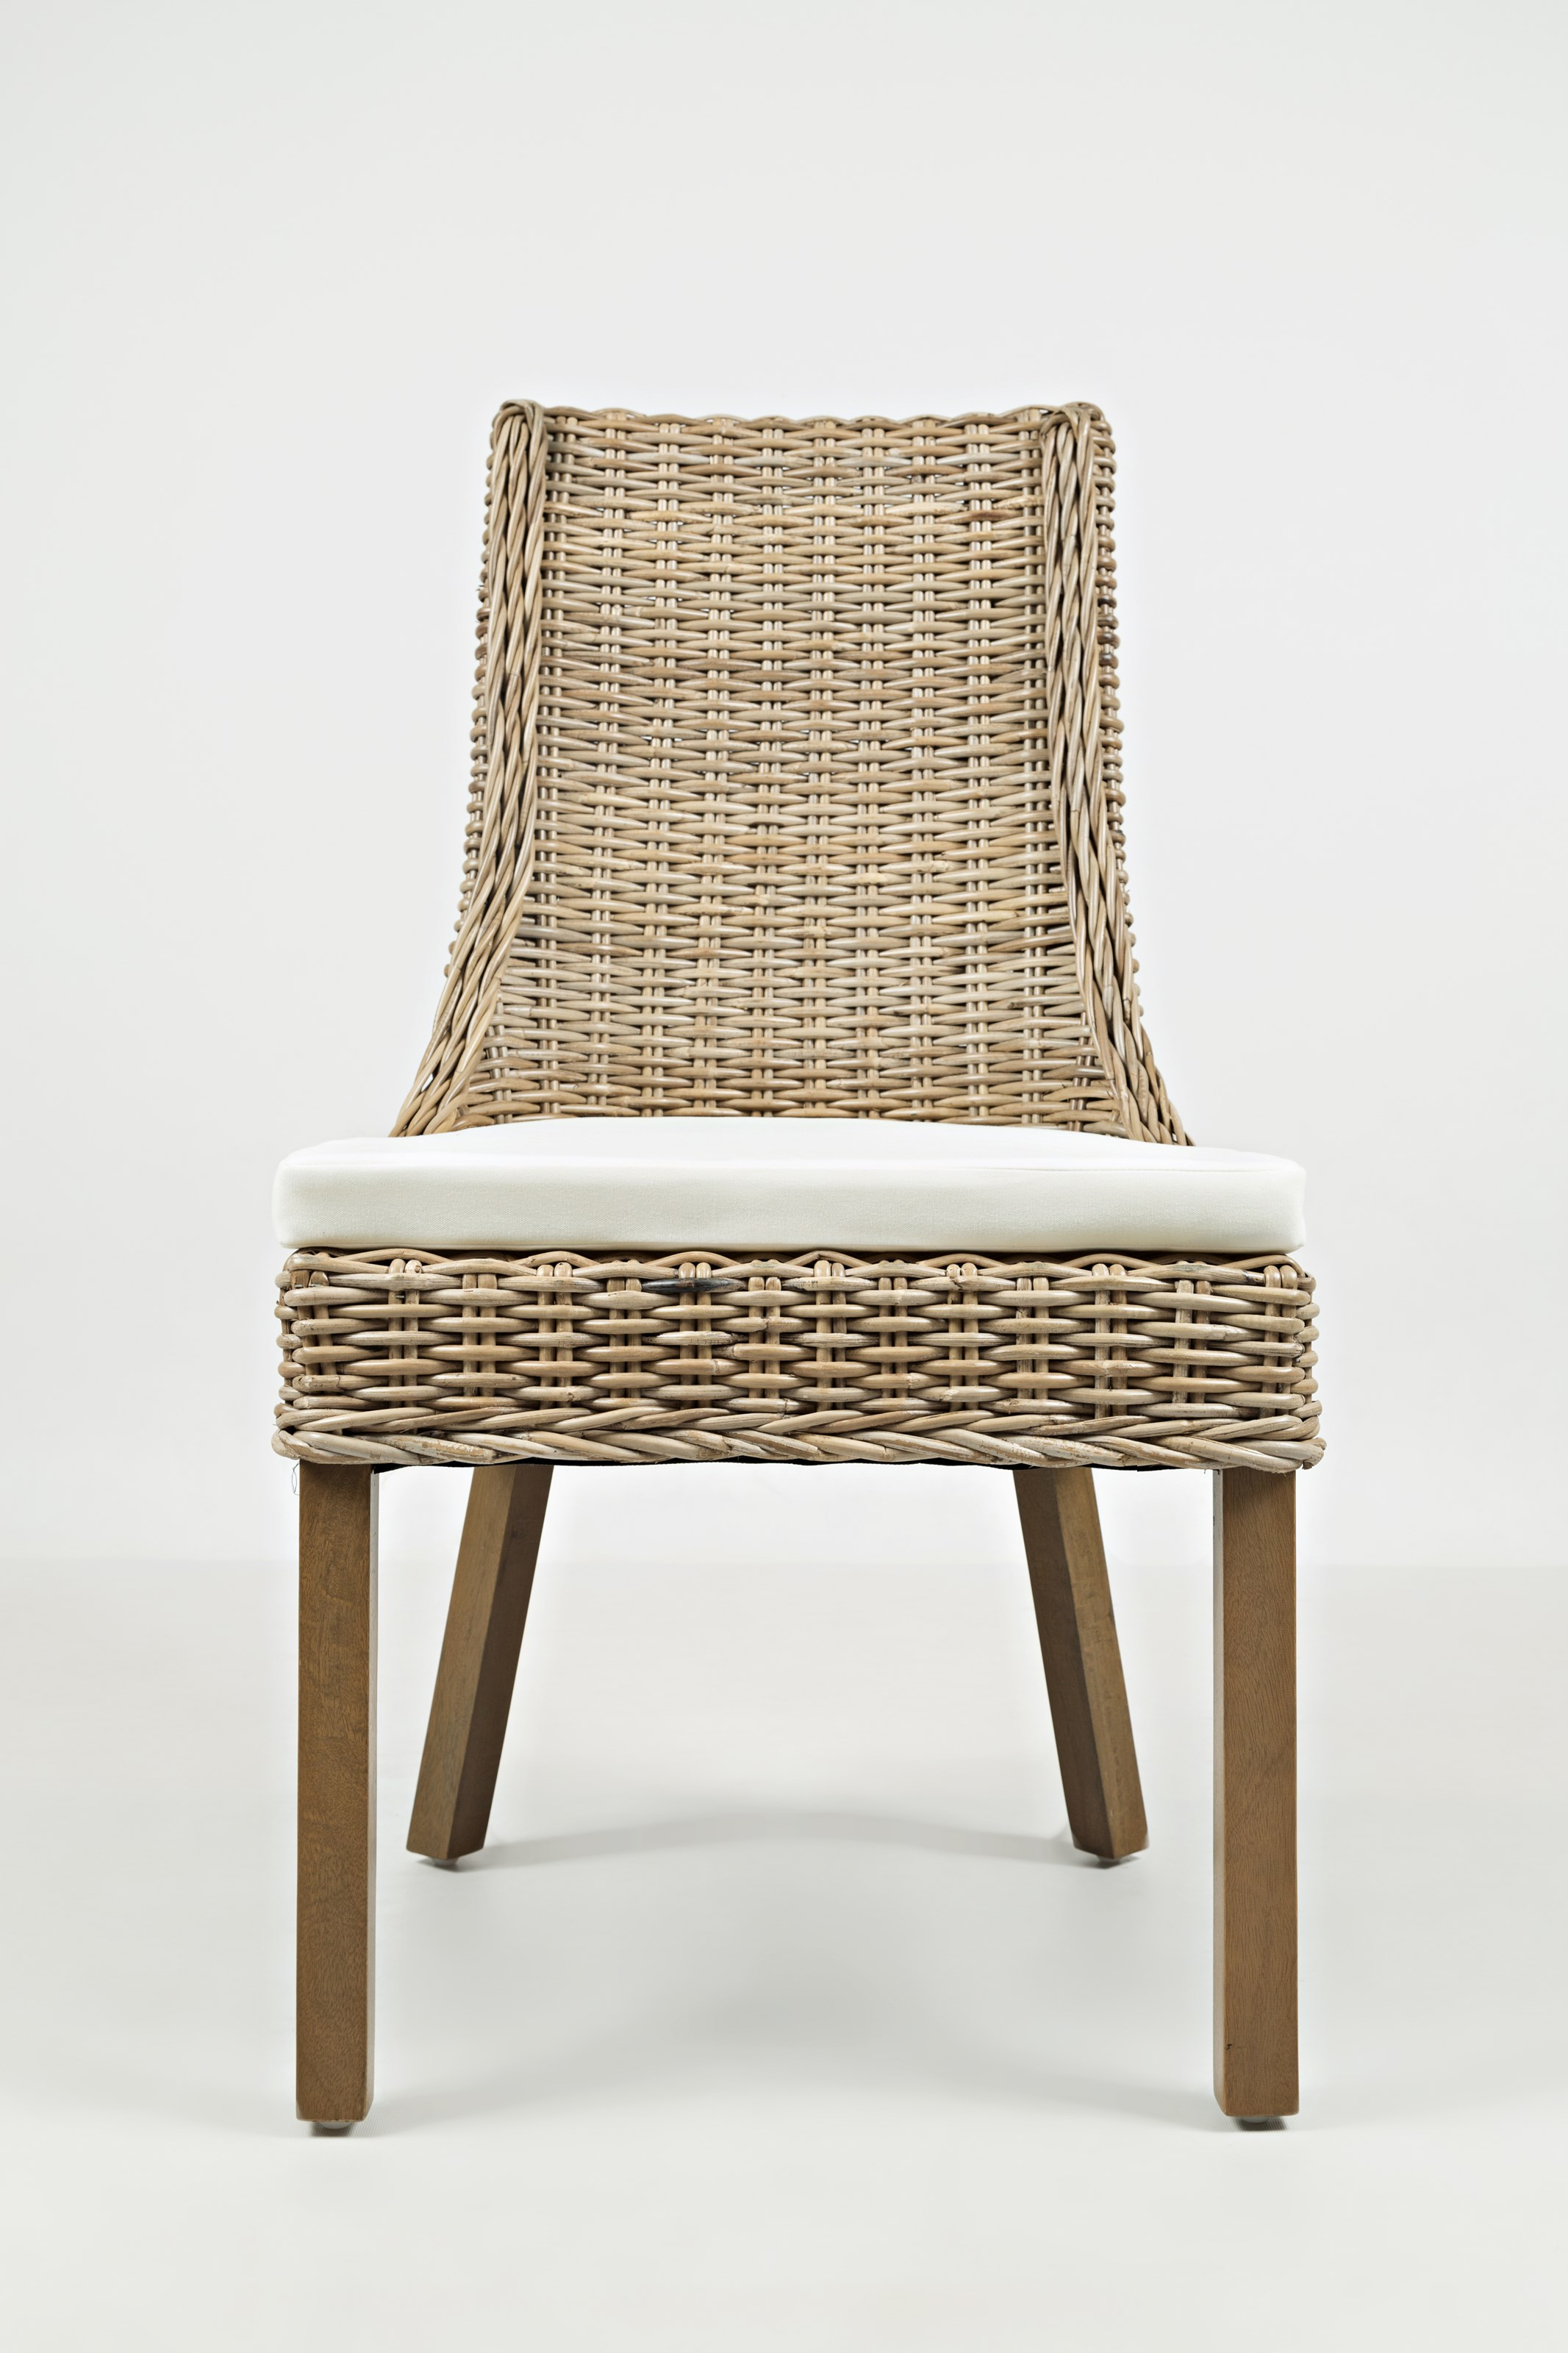 Transitional Rattan Dining Chair With Cushion